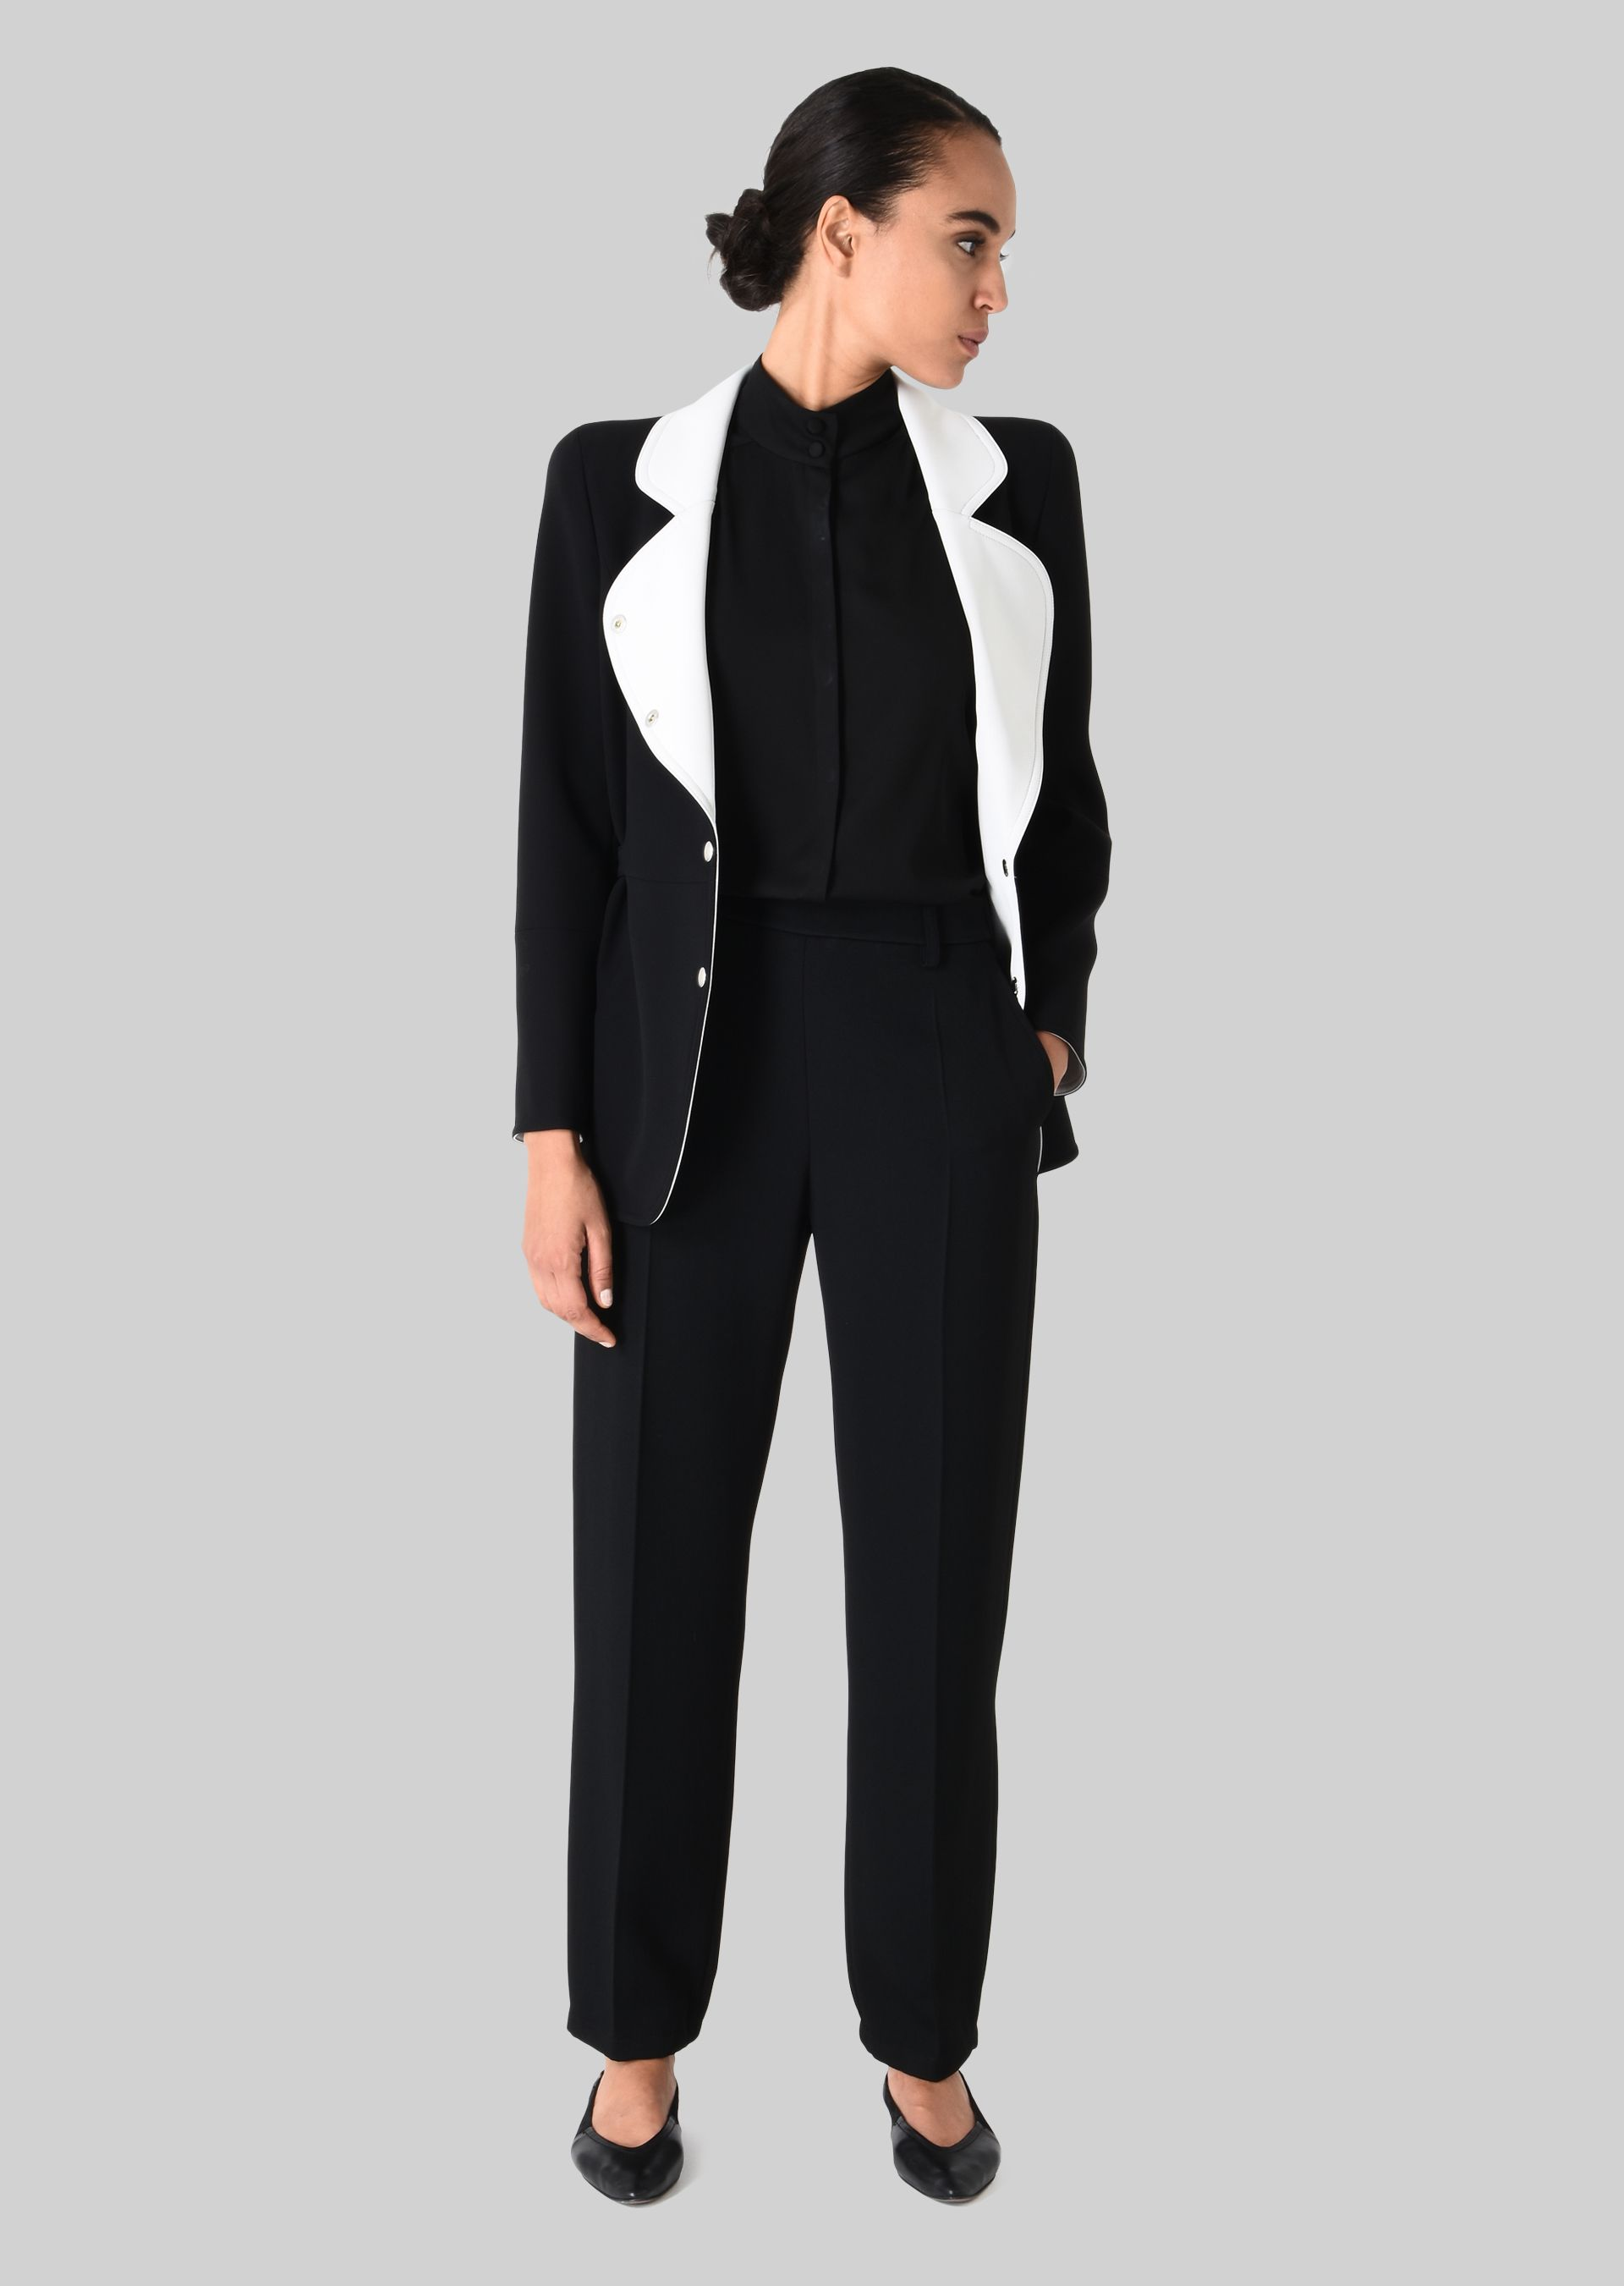 GIORGIO ARMANI CLASSIC TROUSERS IN TECHNICAL FABRIC Pants D f